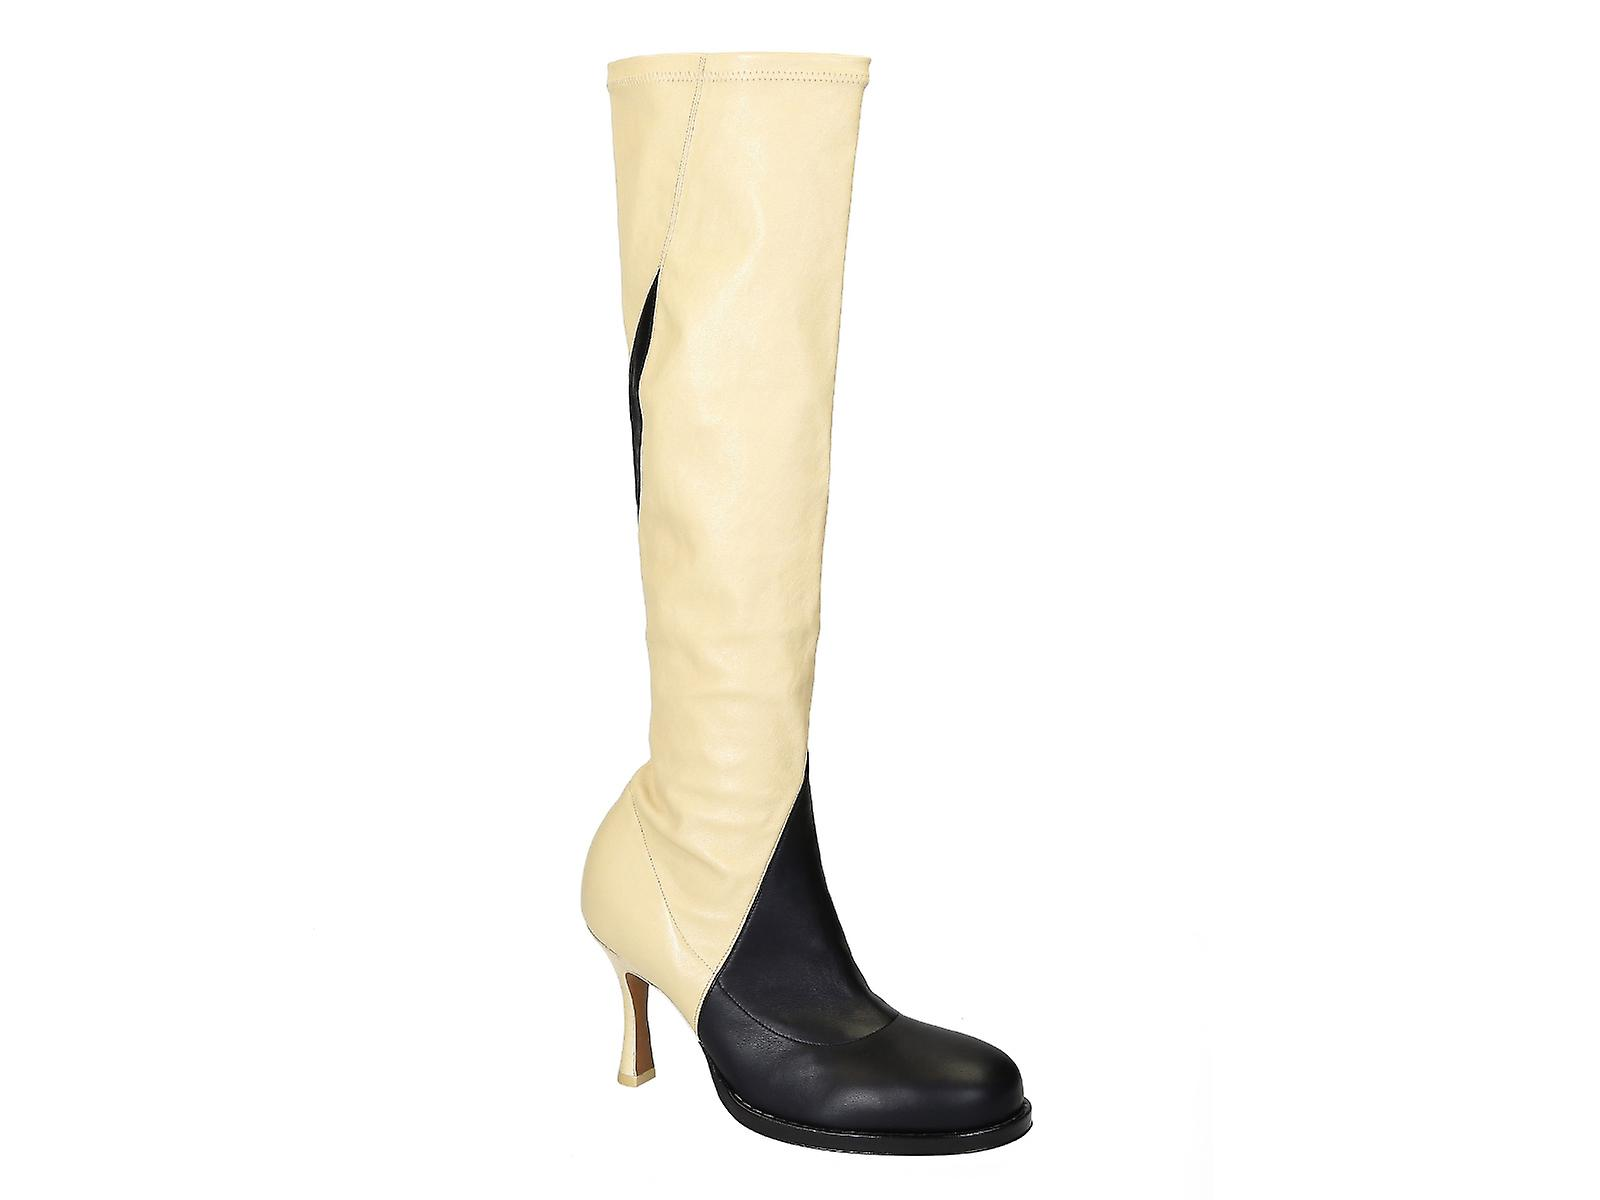 C�line knee high boots in black/off white soft leather iRjct